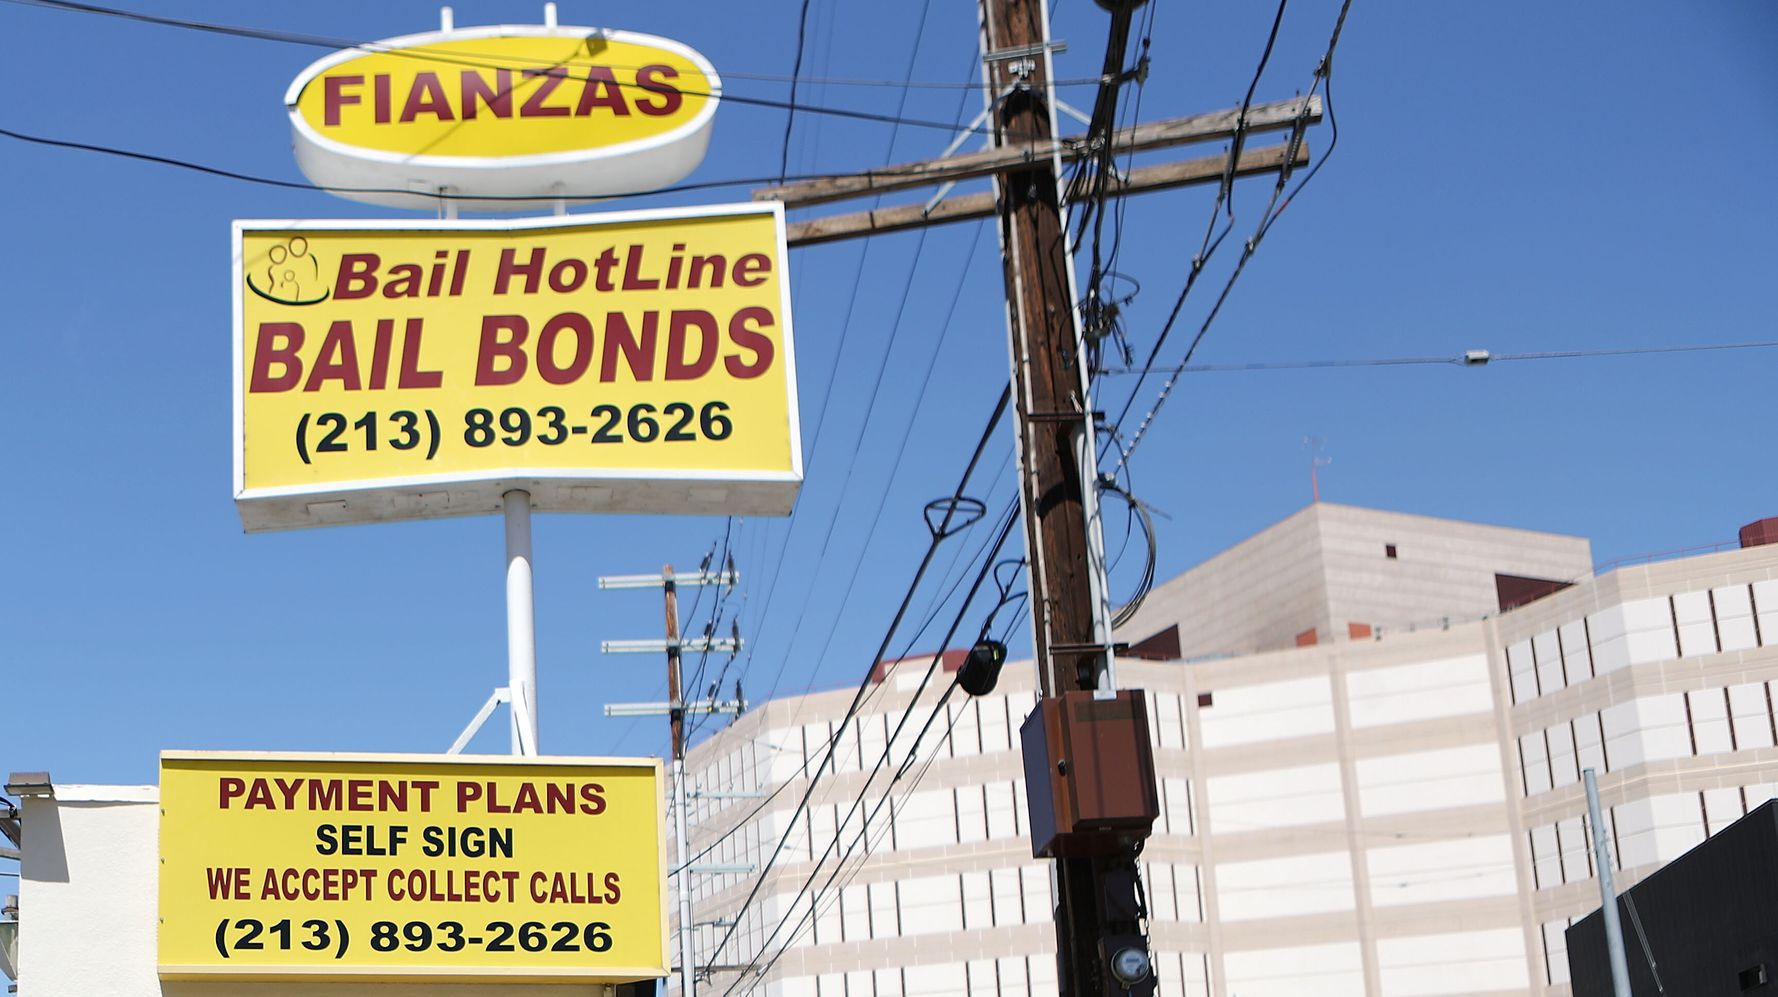 California Votes Down Proposition That Would Have Eliminated Cash Bail